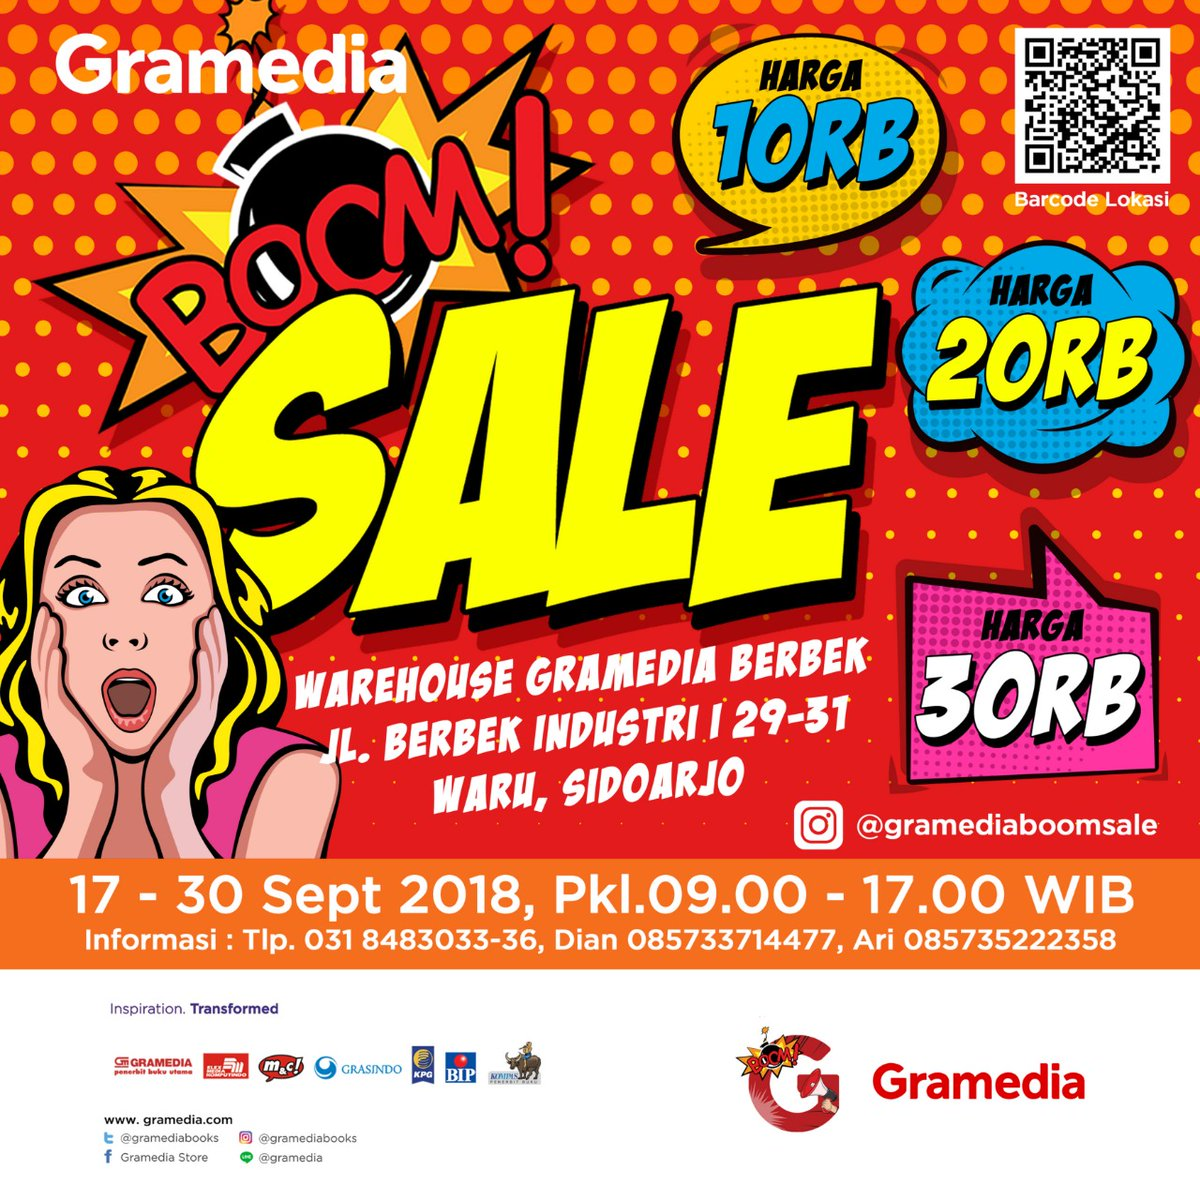 Gramedia Boom Sale - Warehouse Gramedia Sidoarjo, 17-30 September 2018